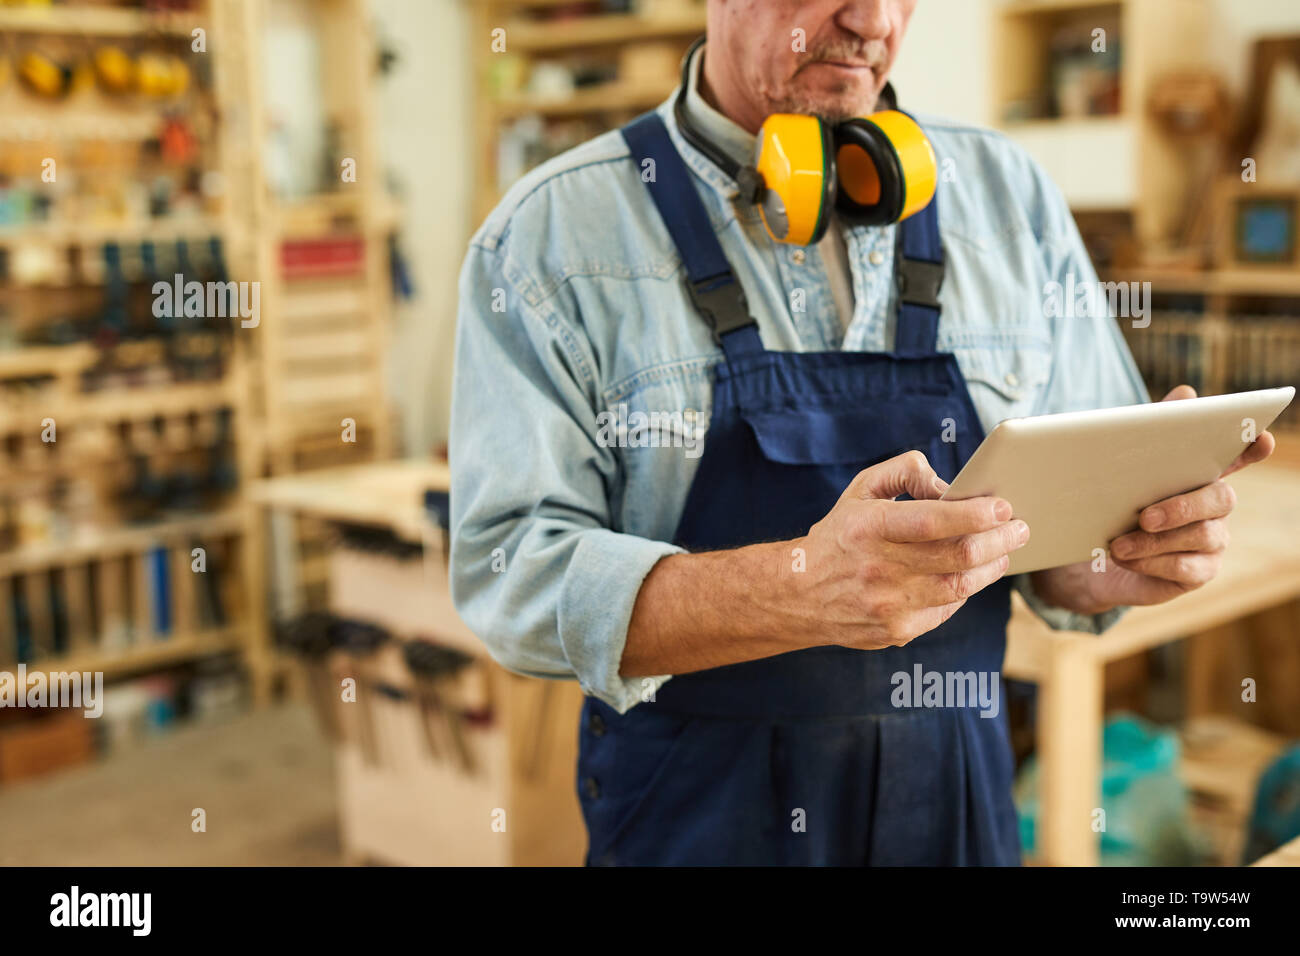 Mid section portrait of senior carpenter using tablet while working in joinery, copy space - Stock Image